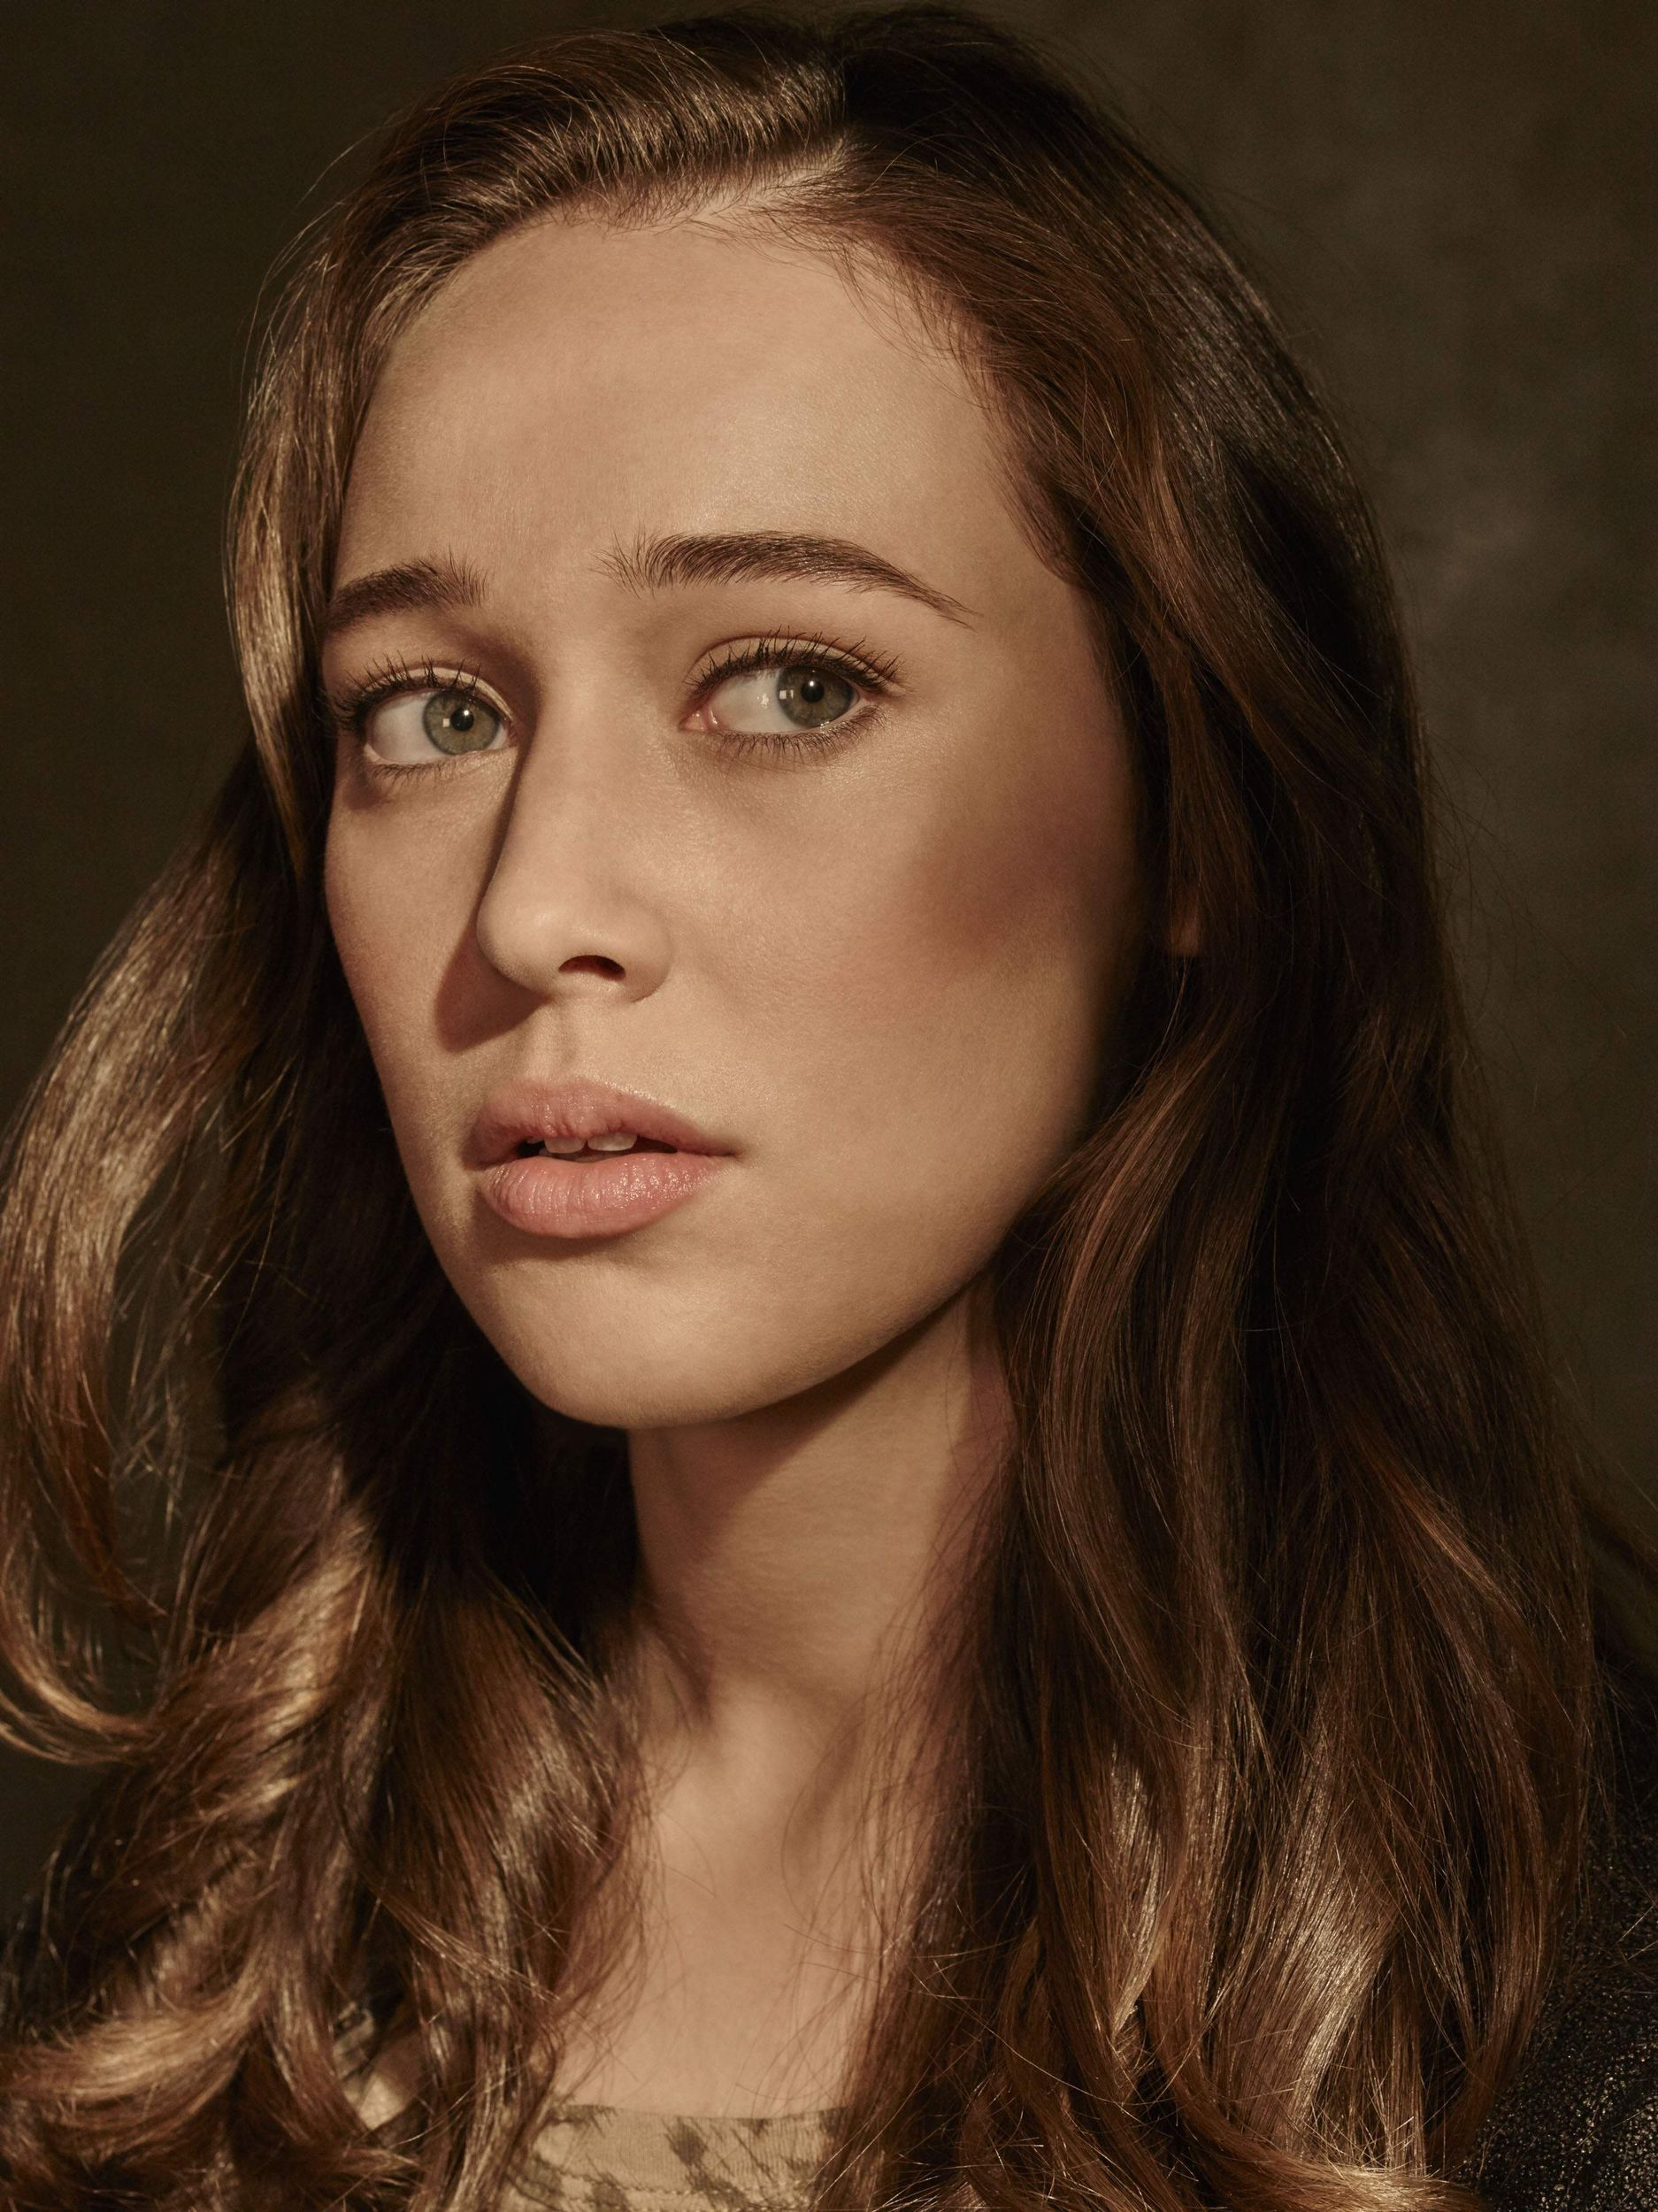 Alycia Debnam Carey Nackt fear the walking dead - season 1 cast promo - alycia debnam